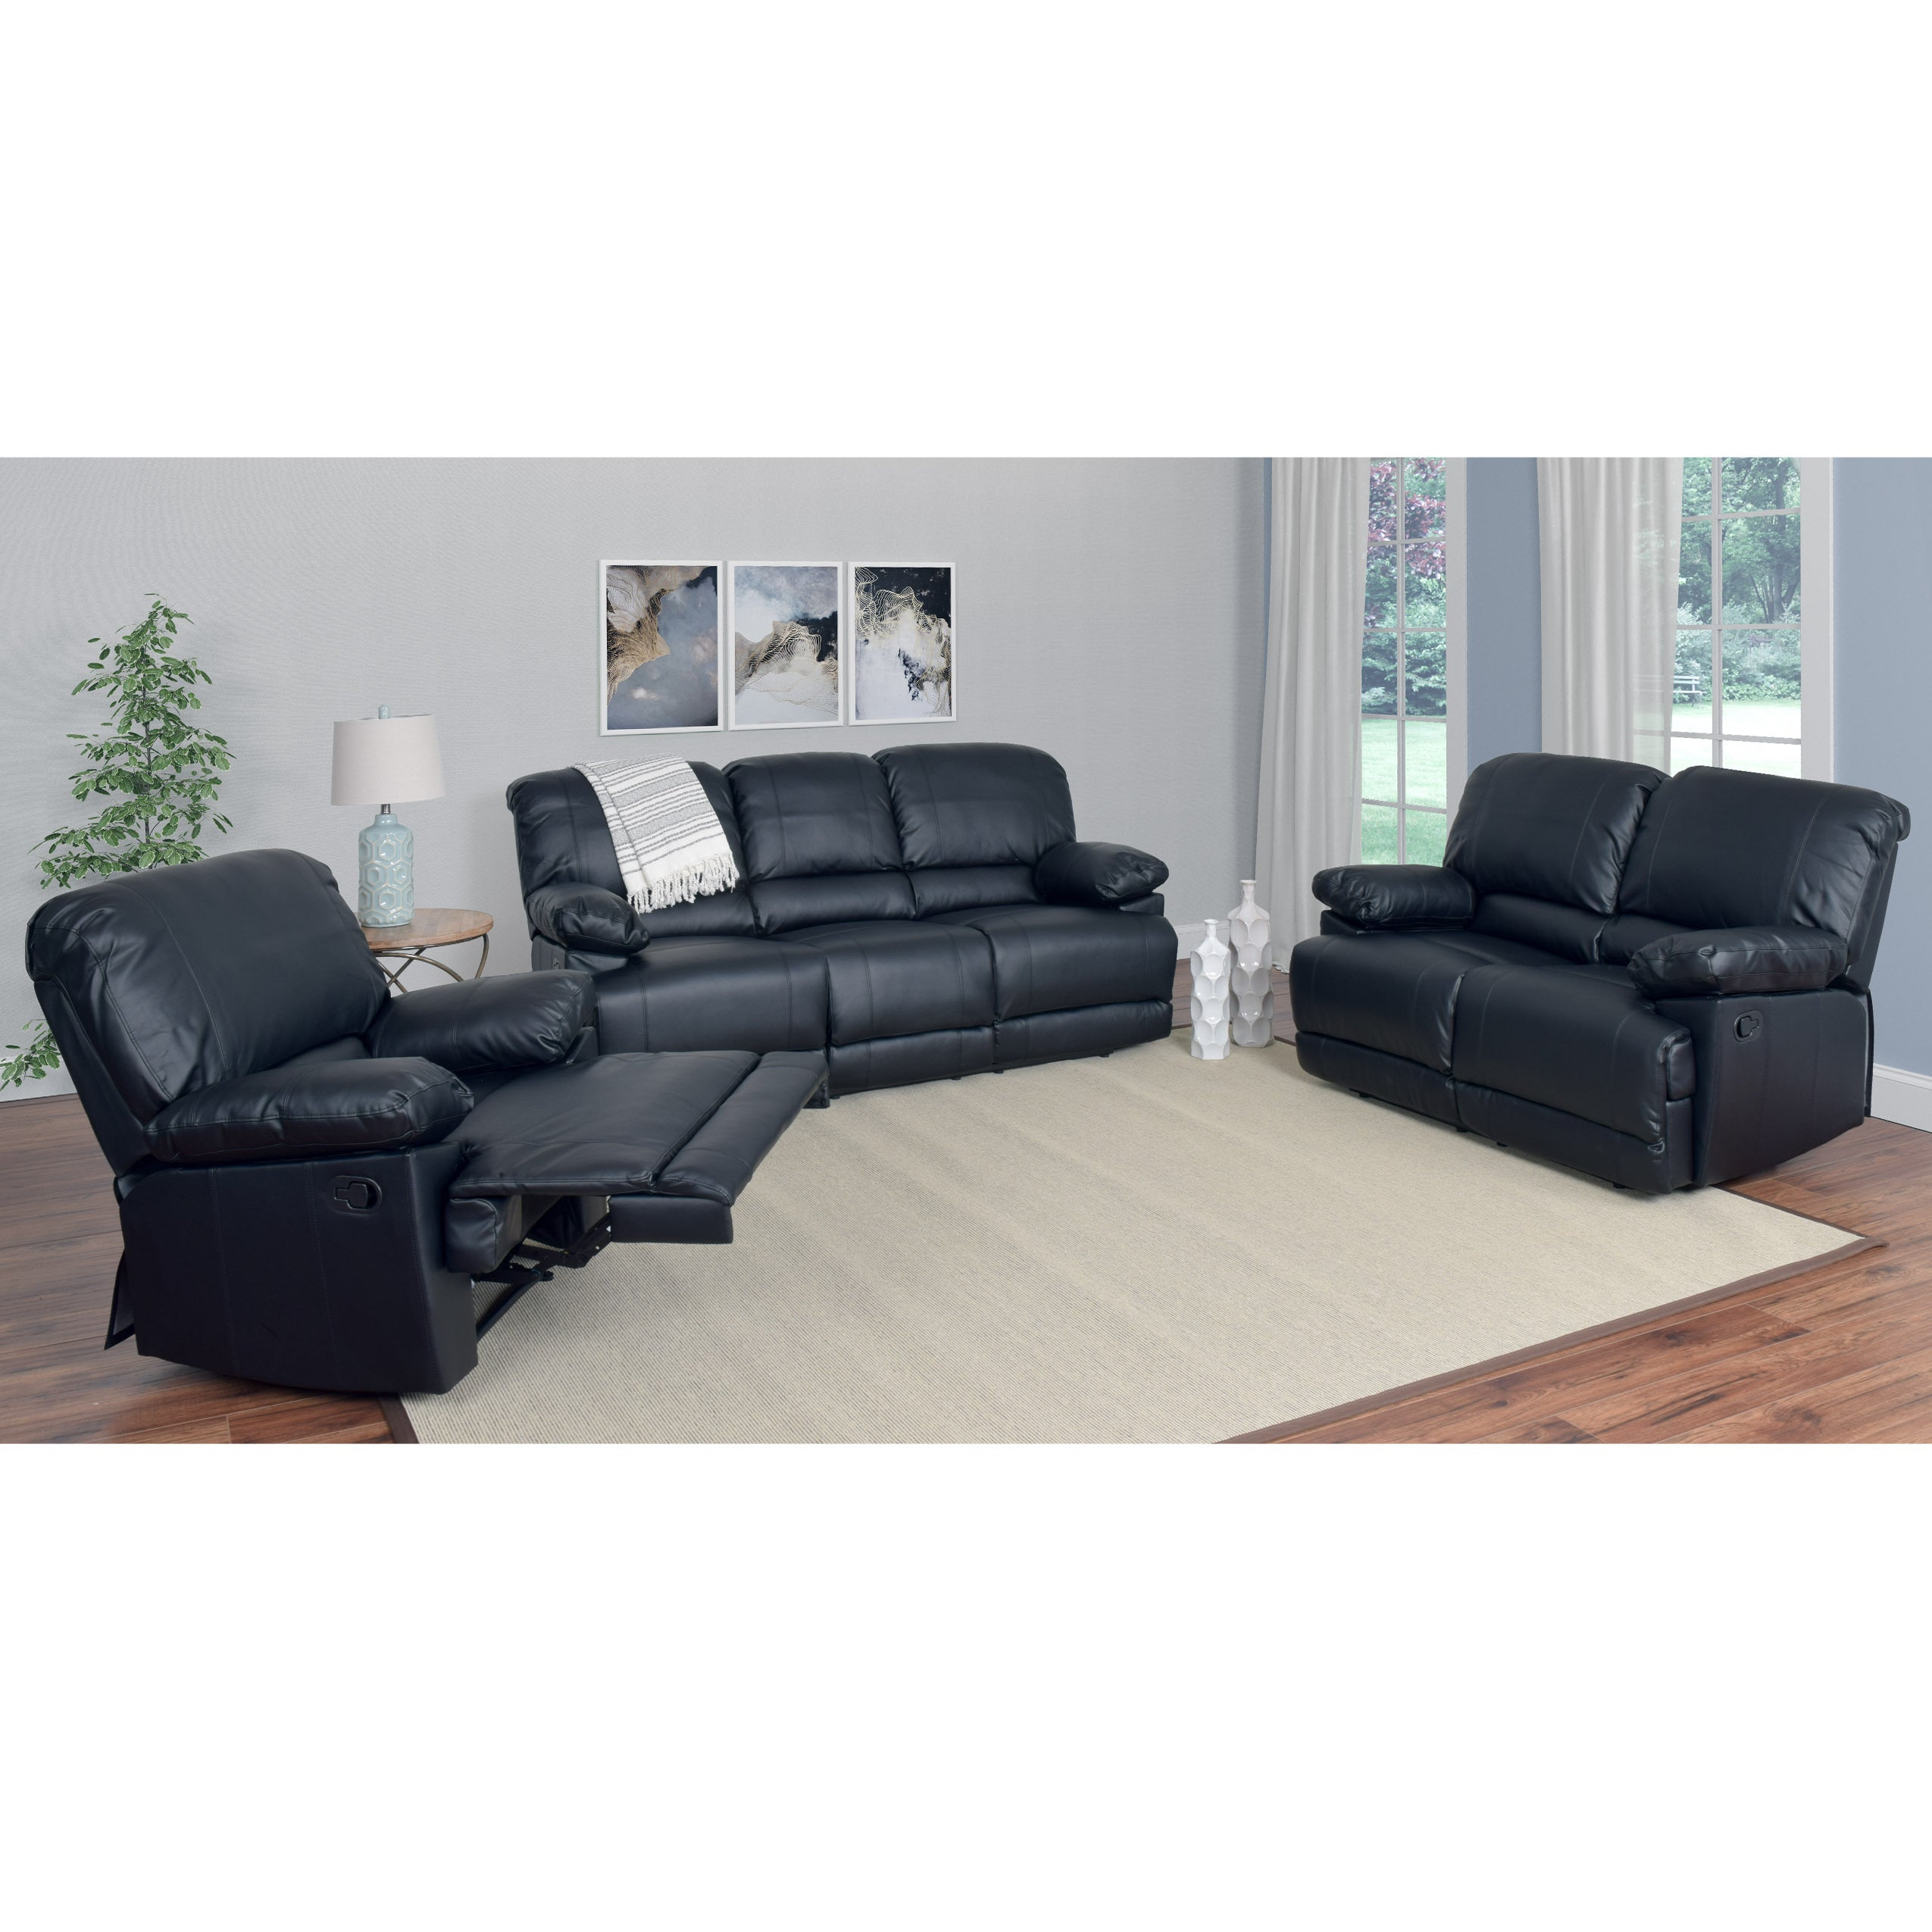 Shop Corliving Lea 3 Piece Bonded Leather Reclining Sofa Set Free